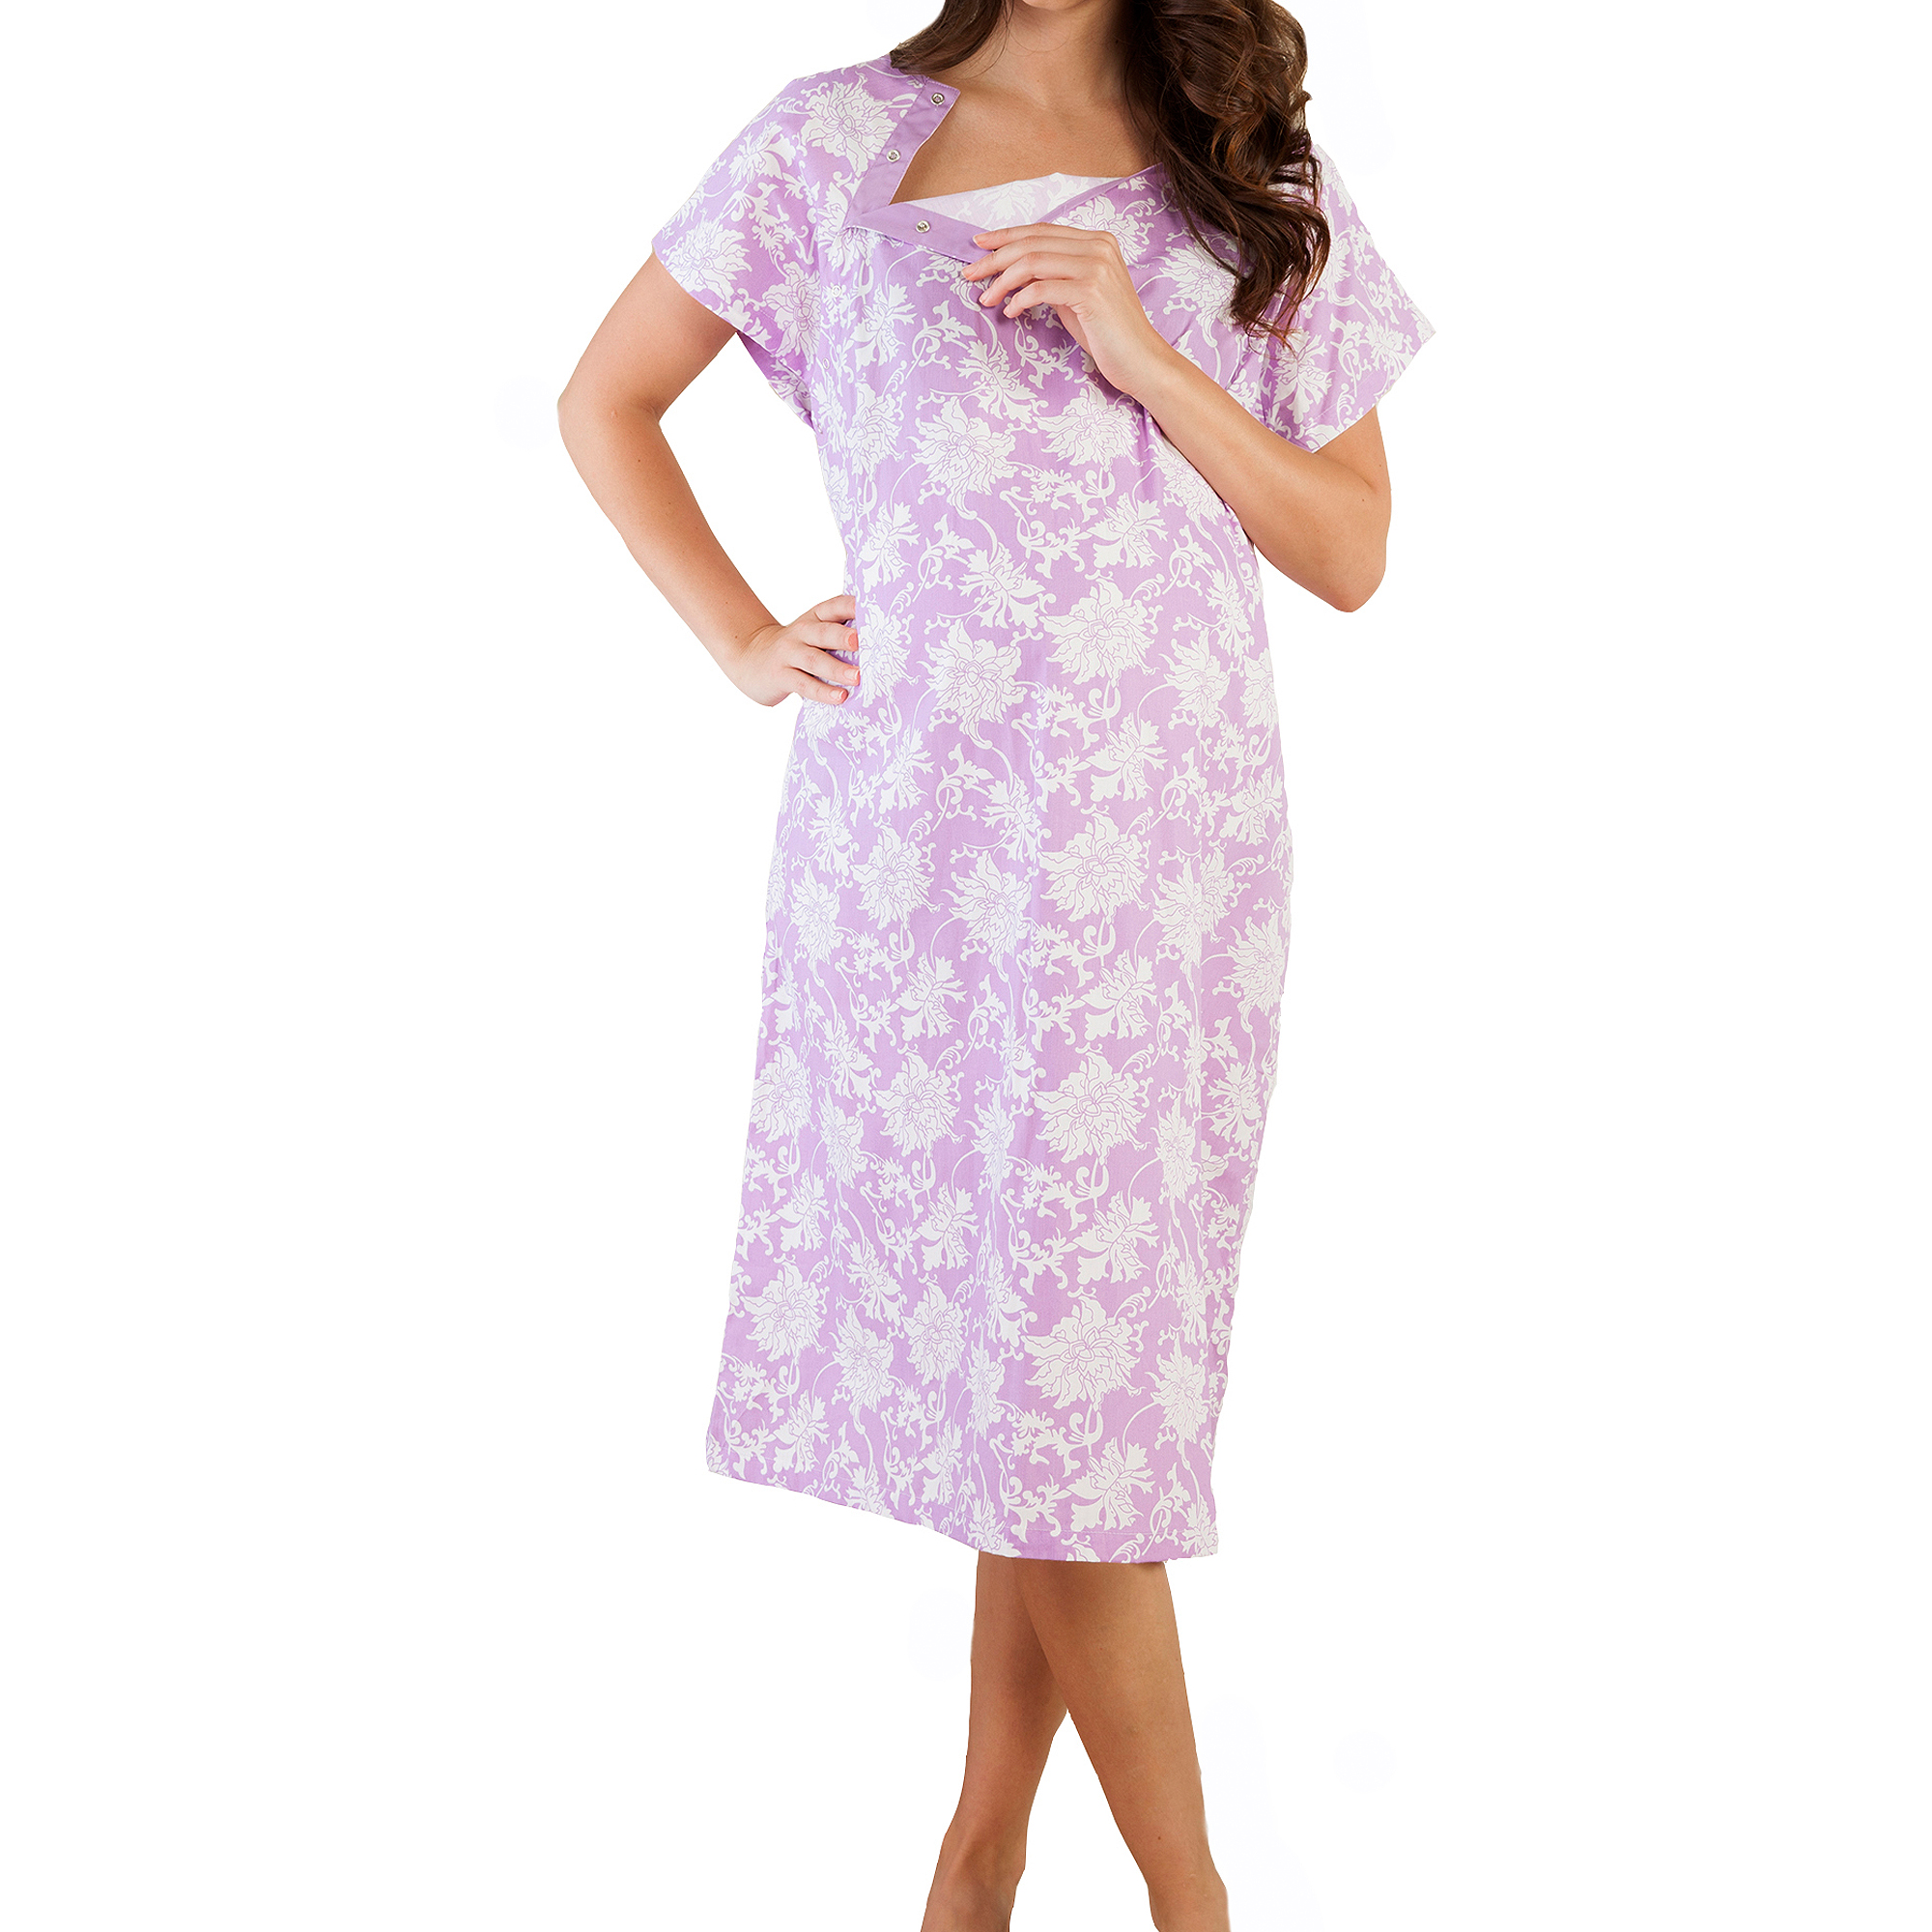 Baby Be Mine Maternity Nursing Hospital Gownie with Pillowcase ...